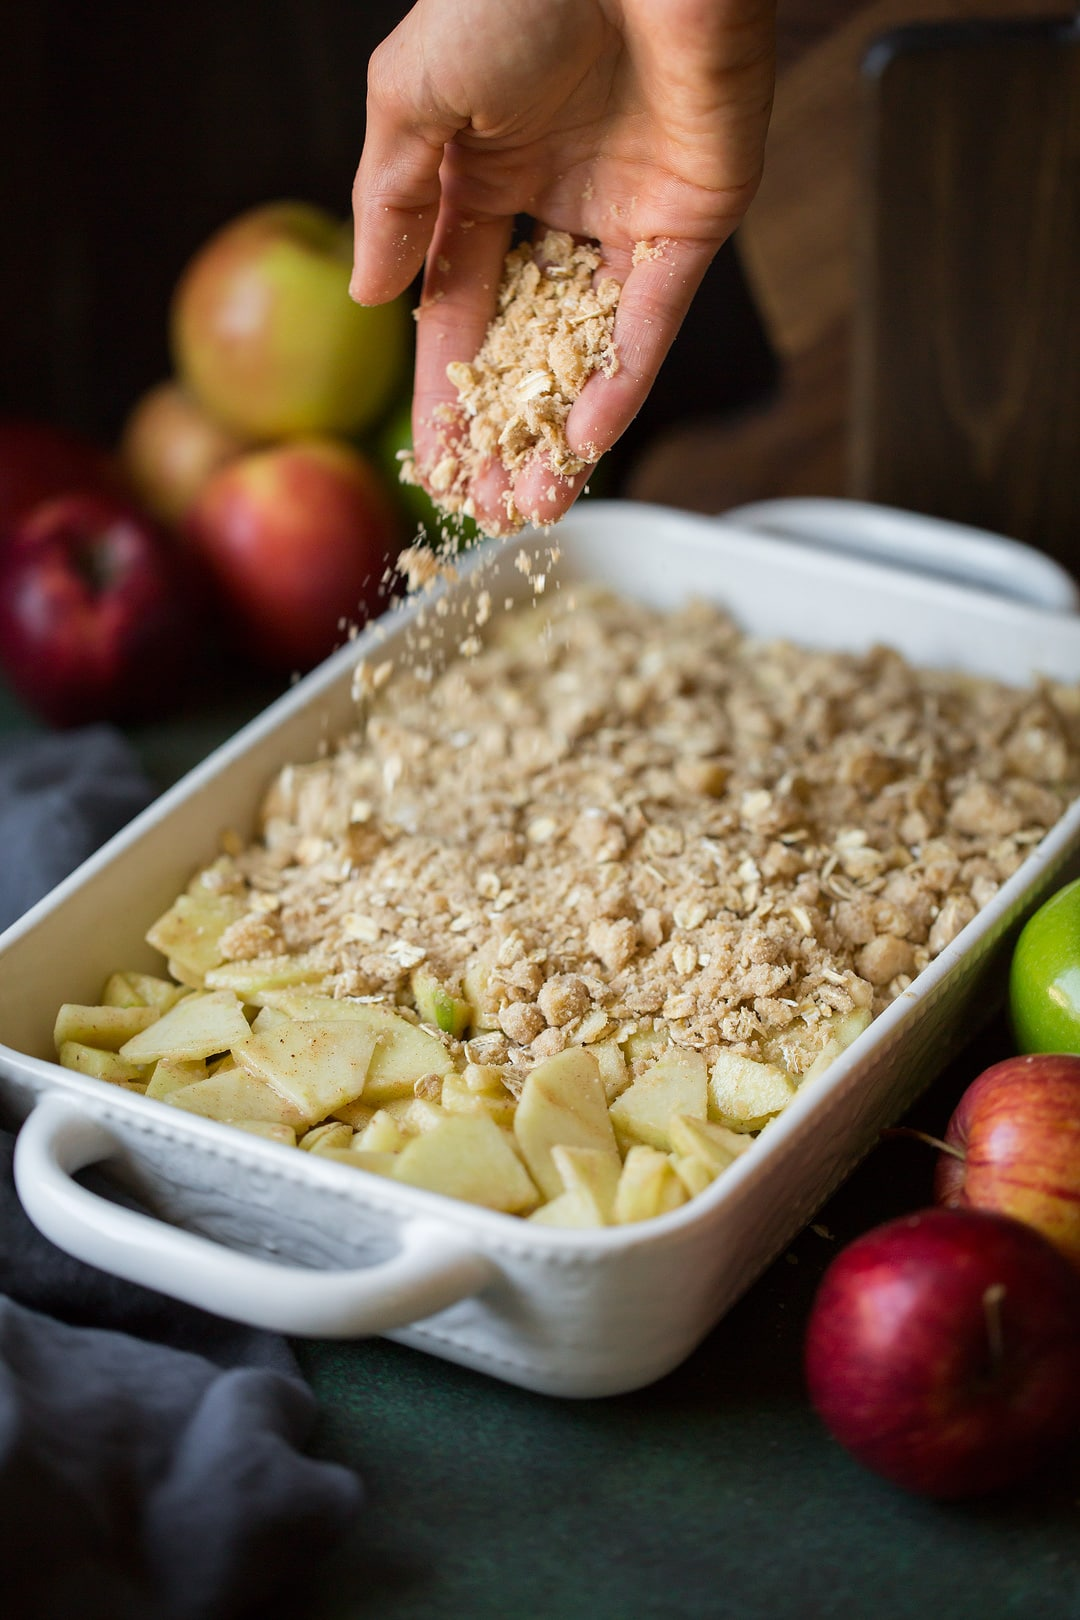 sprinkling apple crisp topping onto sliced apples